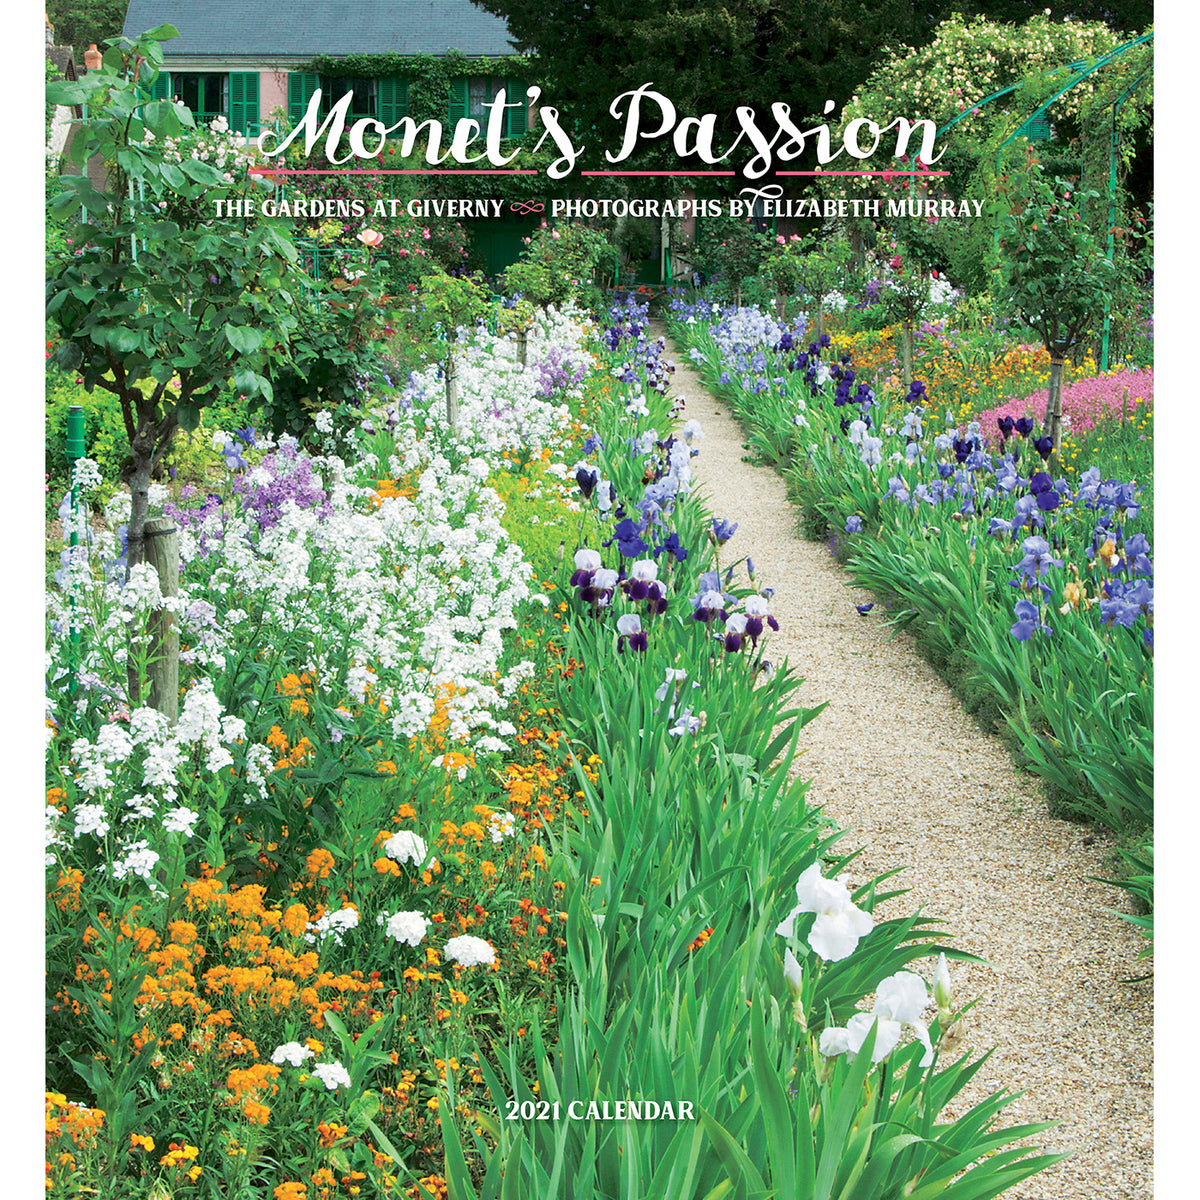 2021 Wall Calendar - Monet's Passion: The Gardens at Giverny